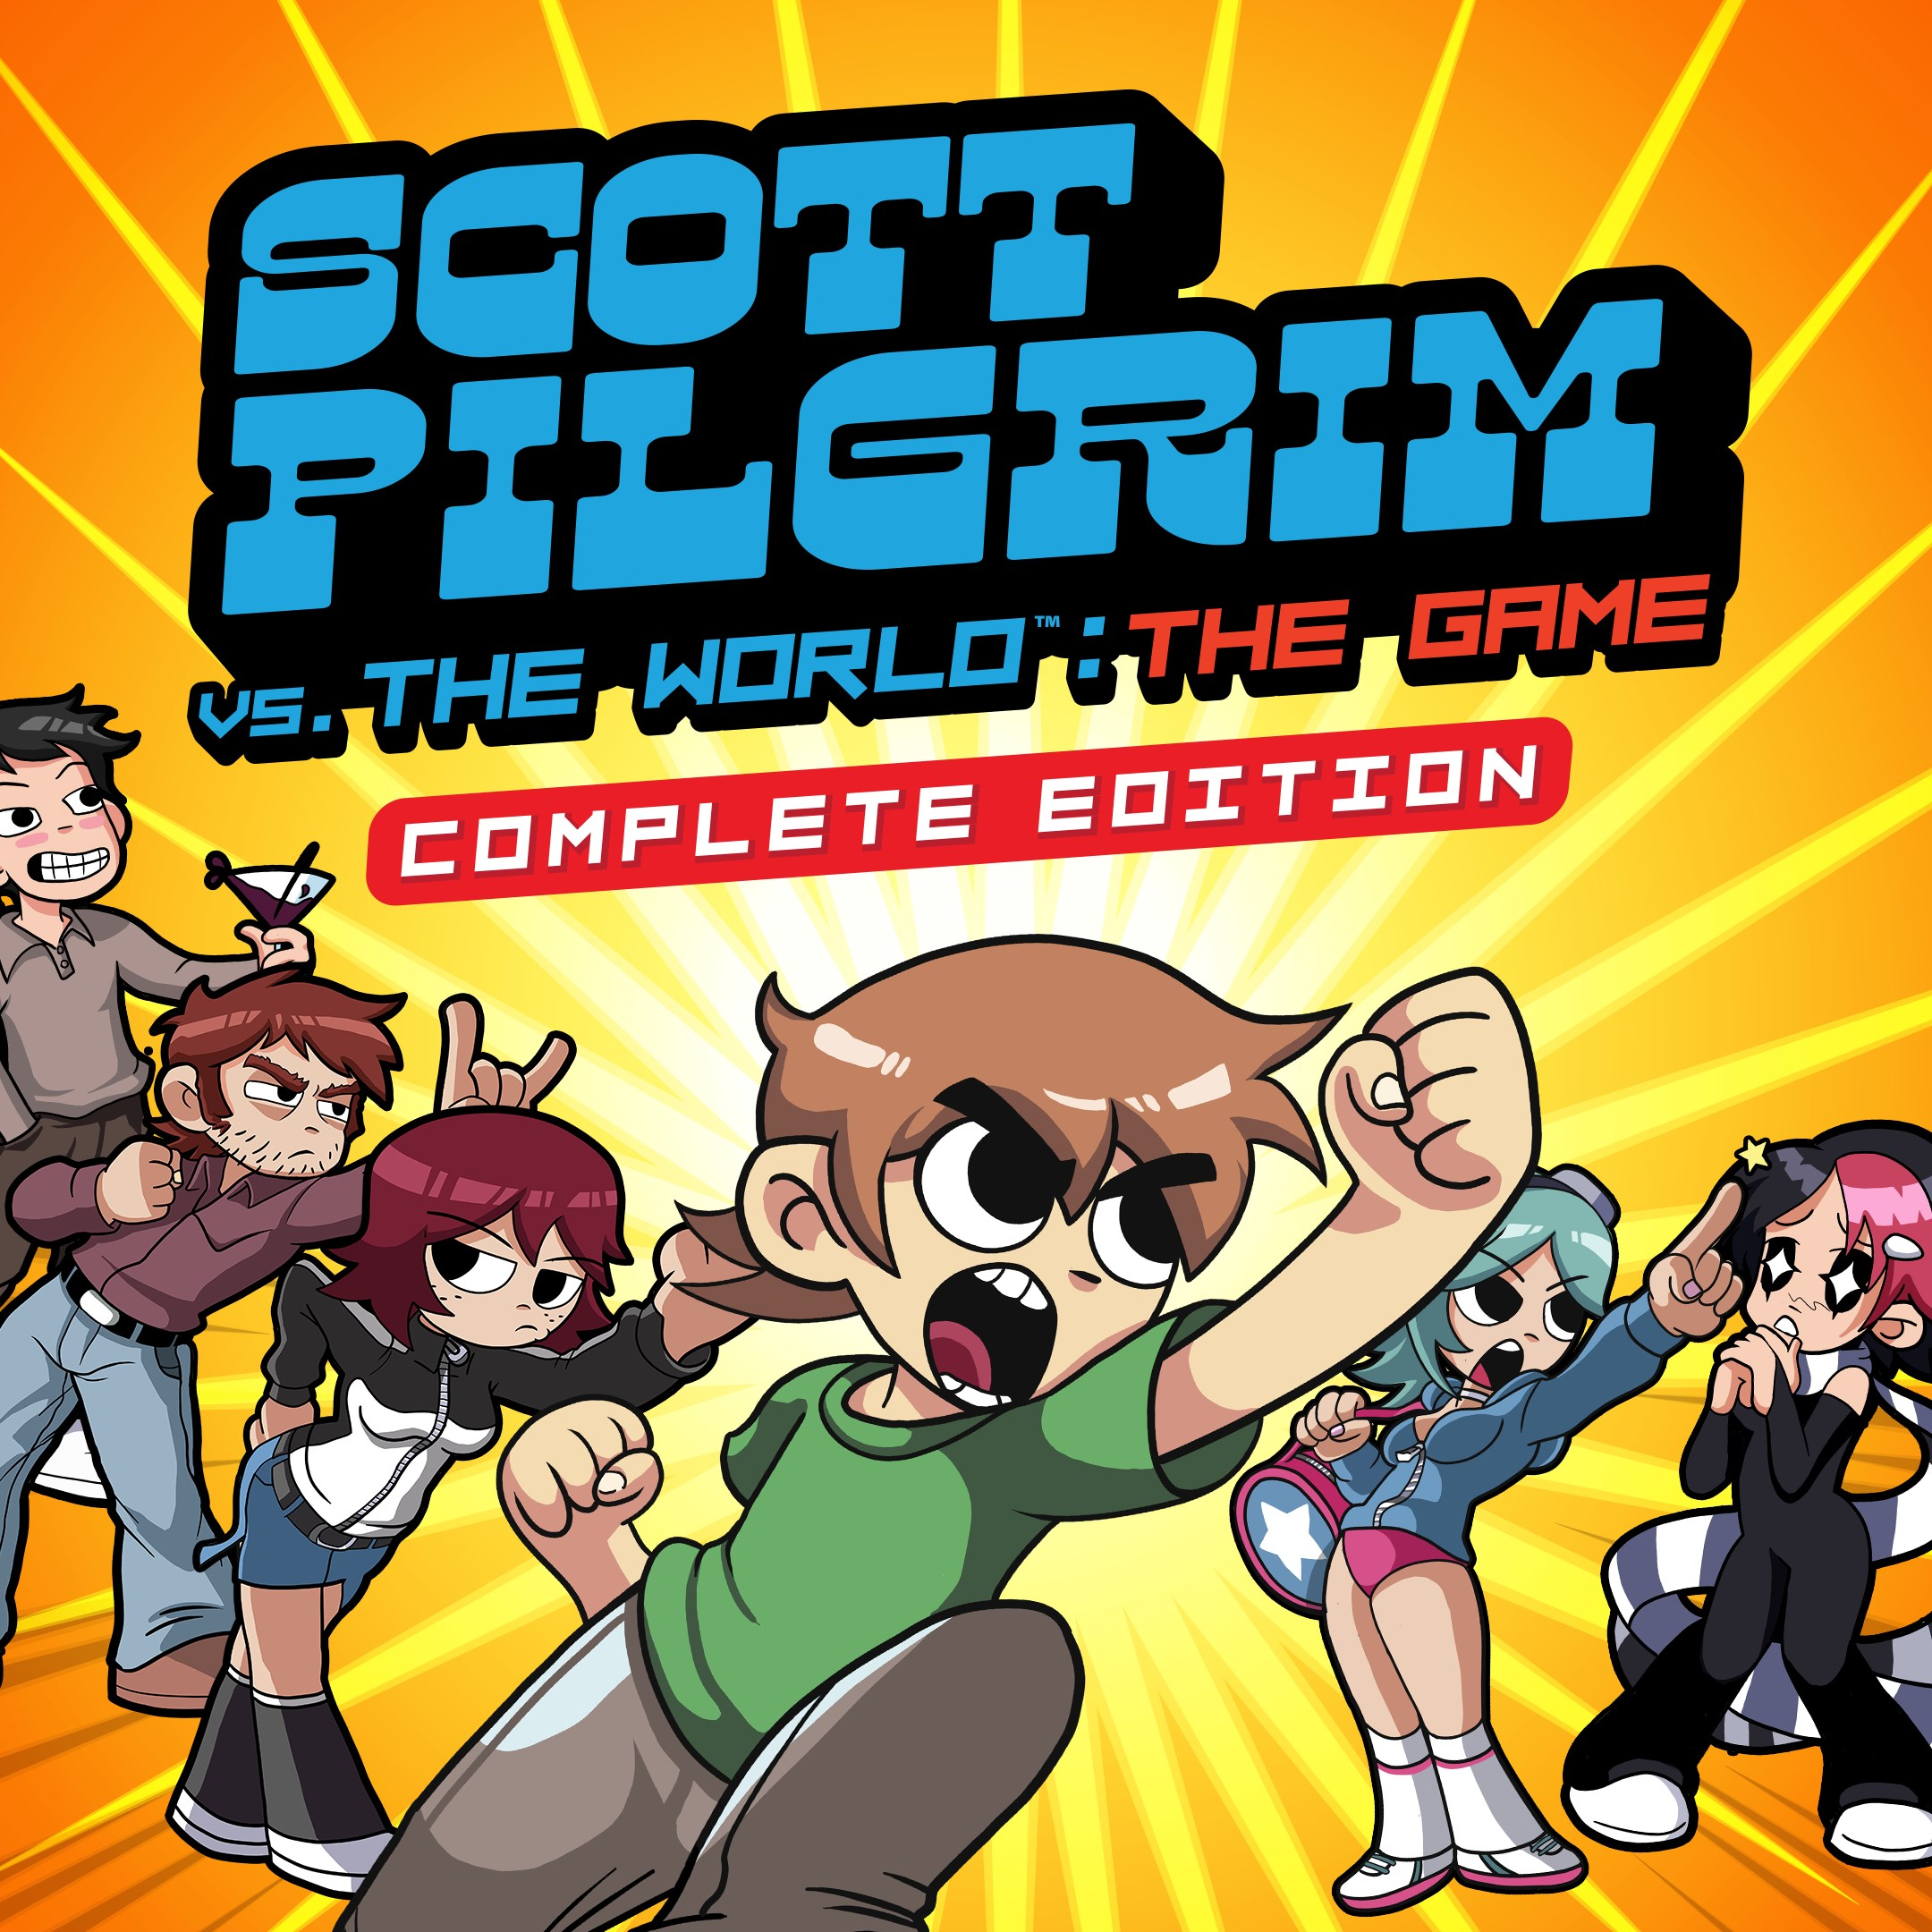 Scott Pilgrim vs. The World : The Game - Complete Edition achievements